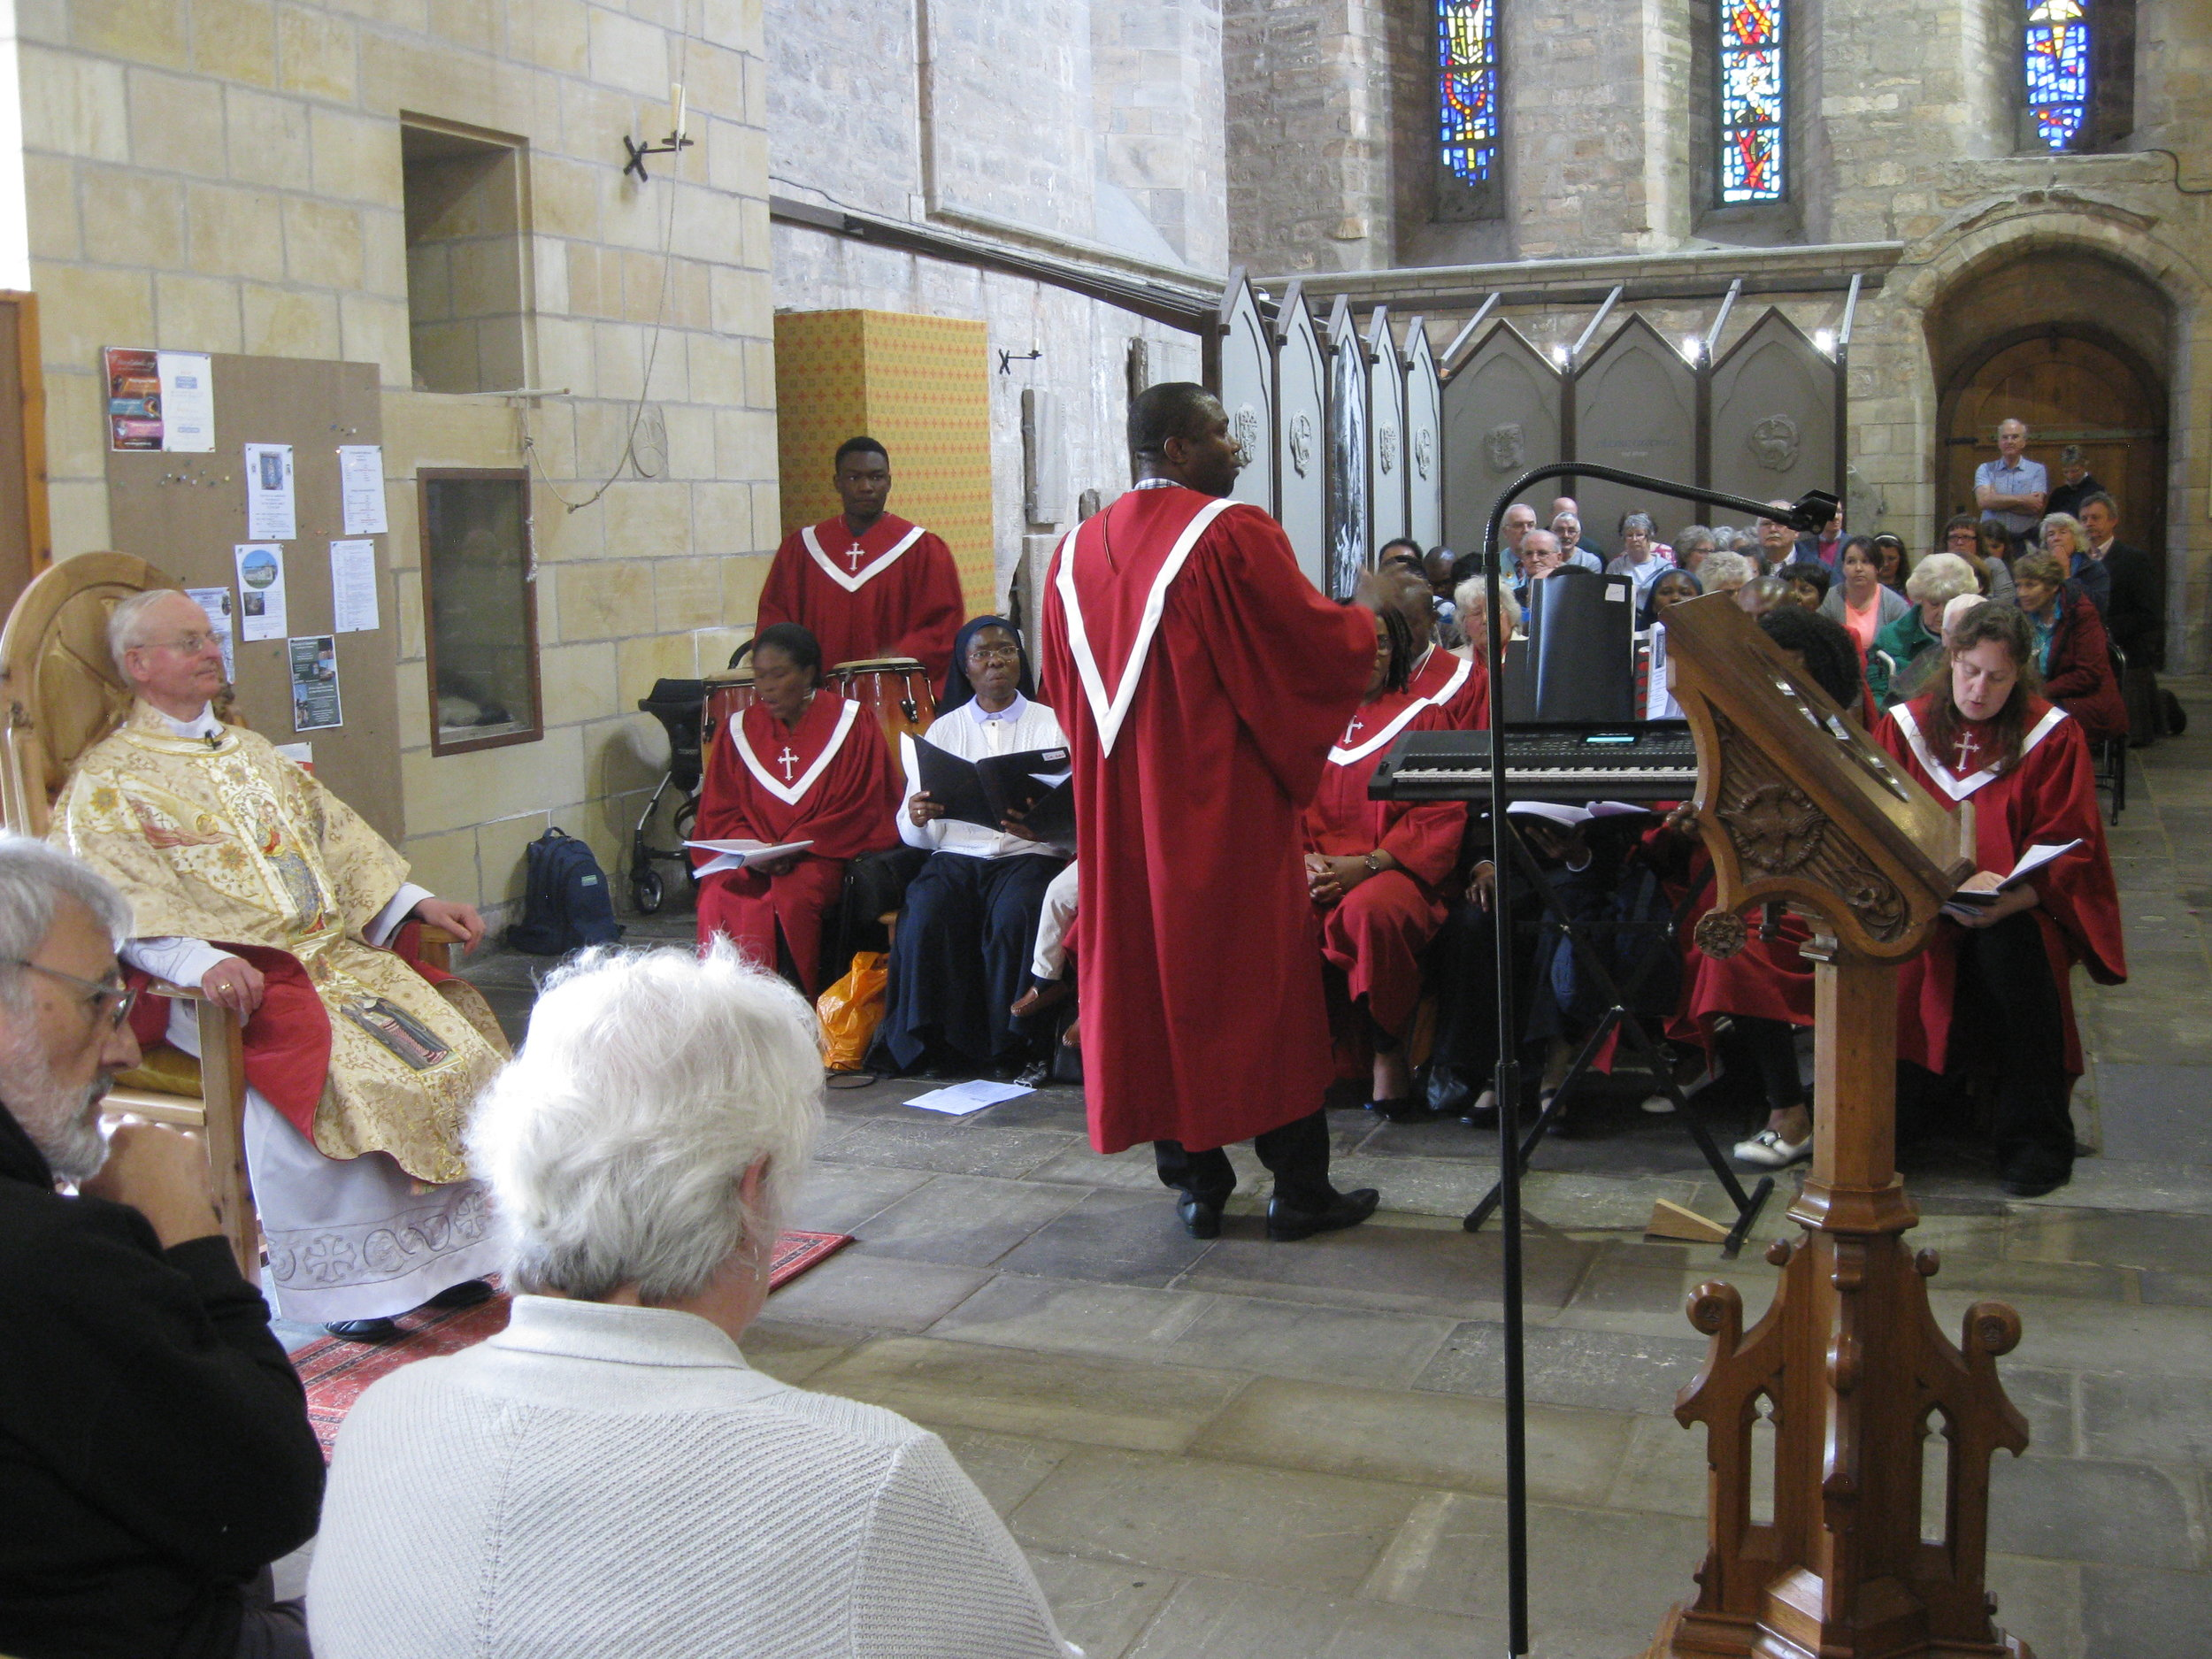 The Nigerian Choir in the Transepts